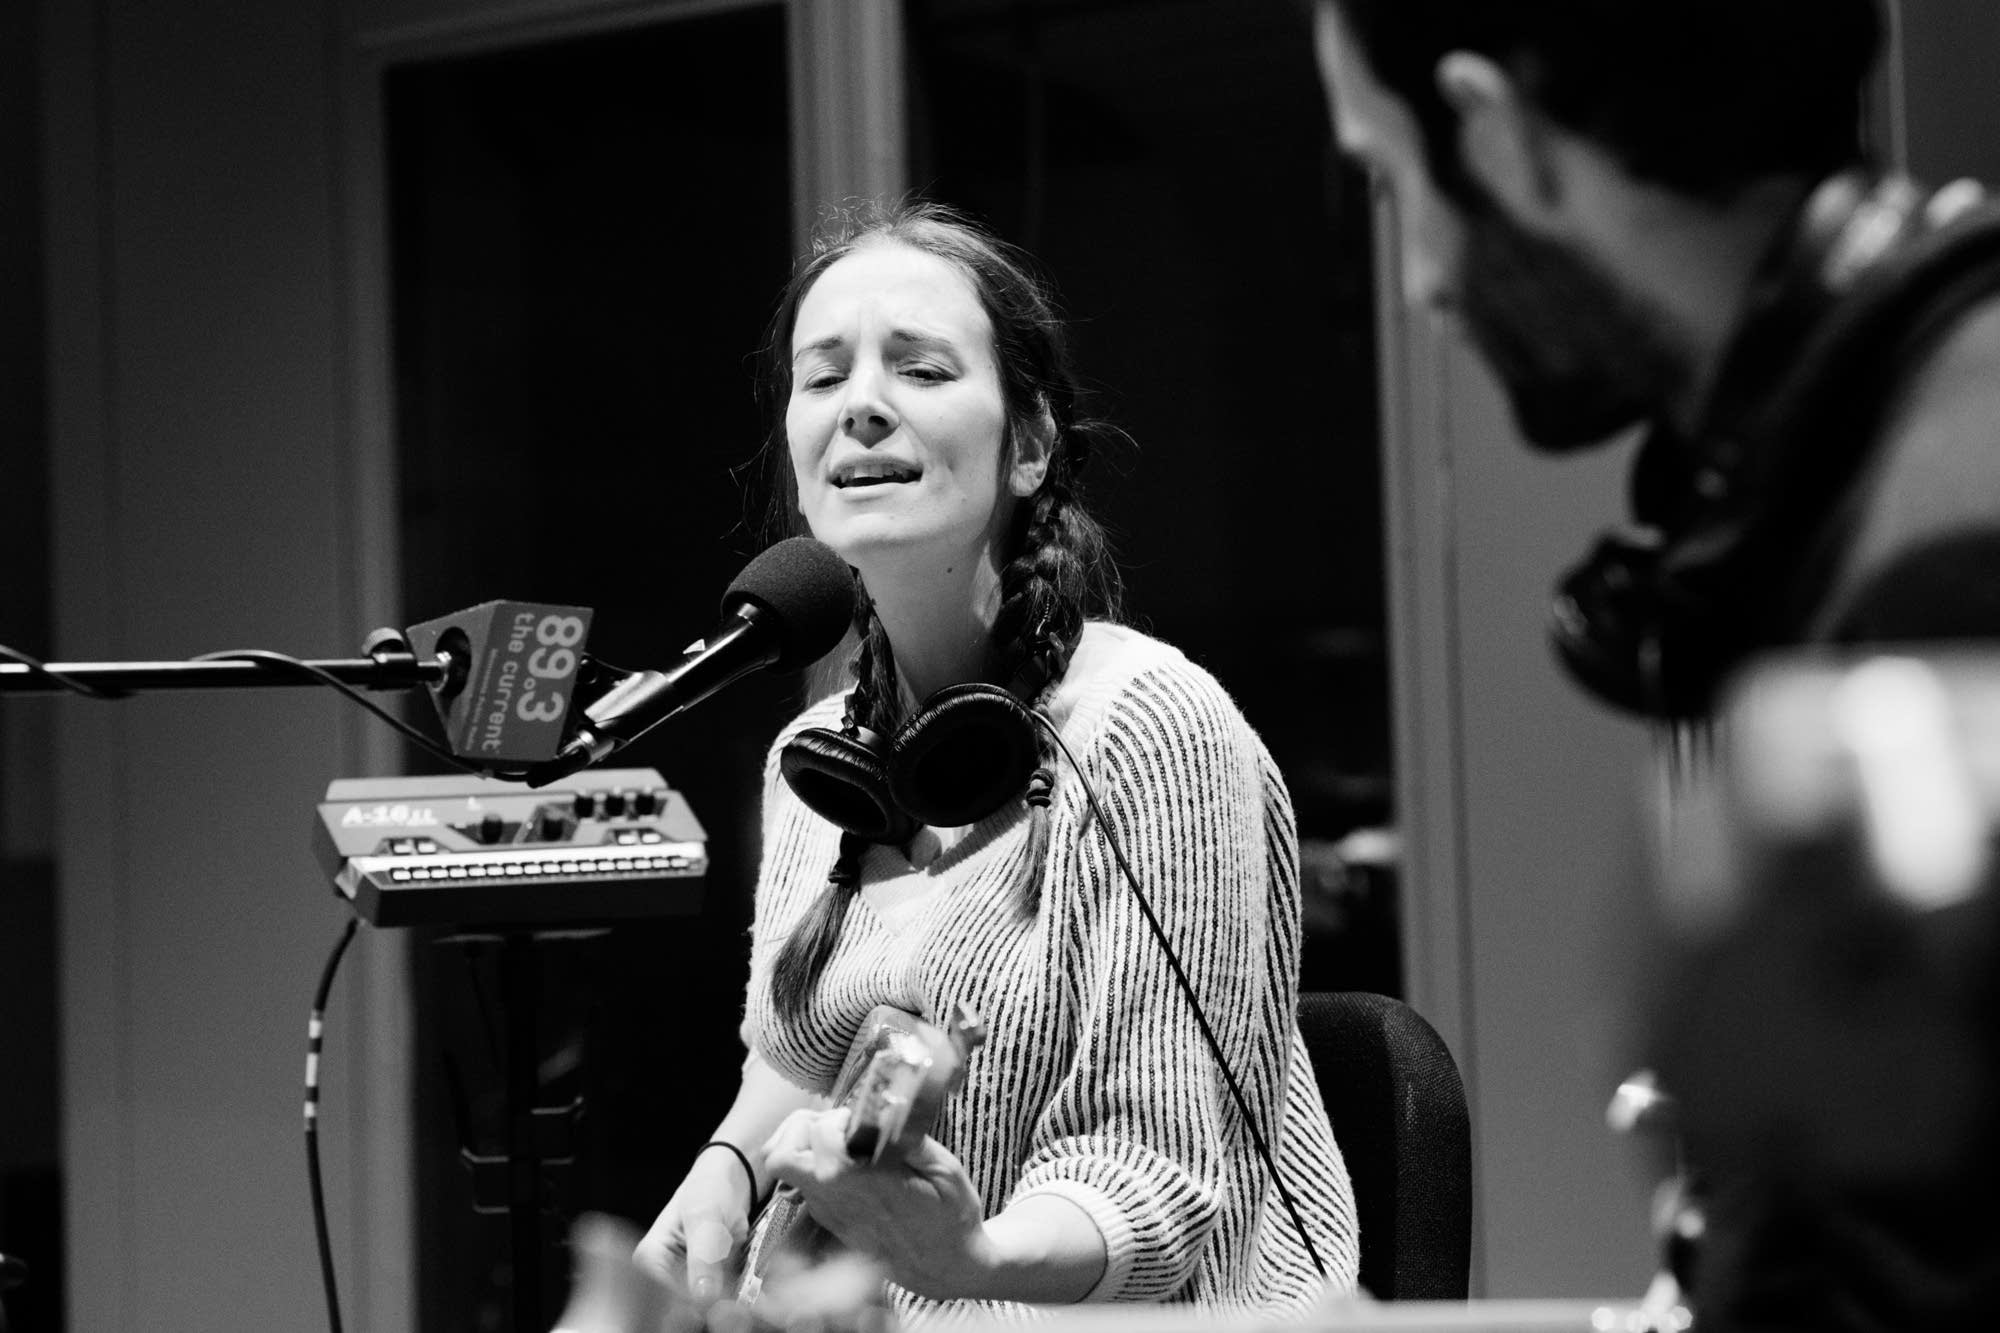 Margaret Glaspy in The Current studio